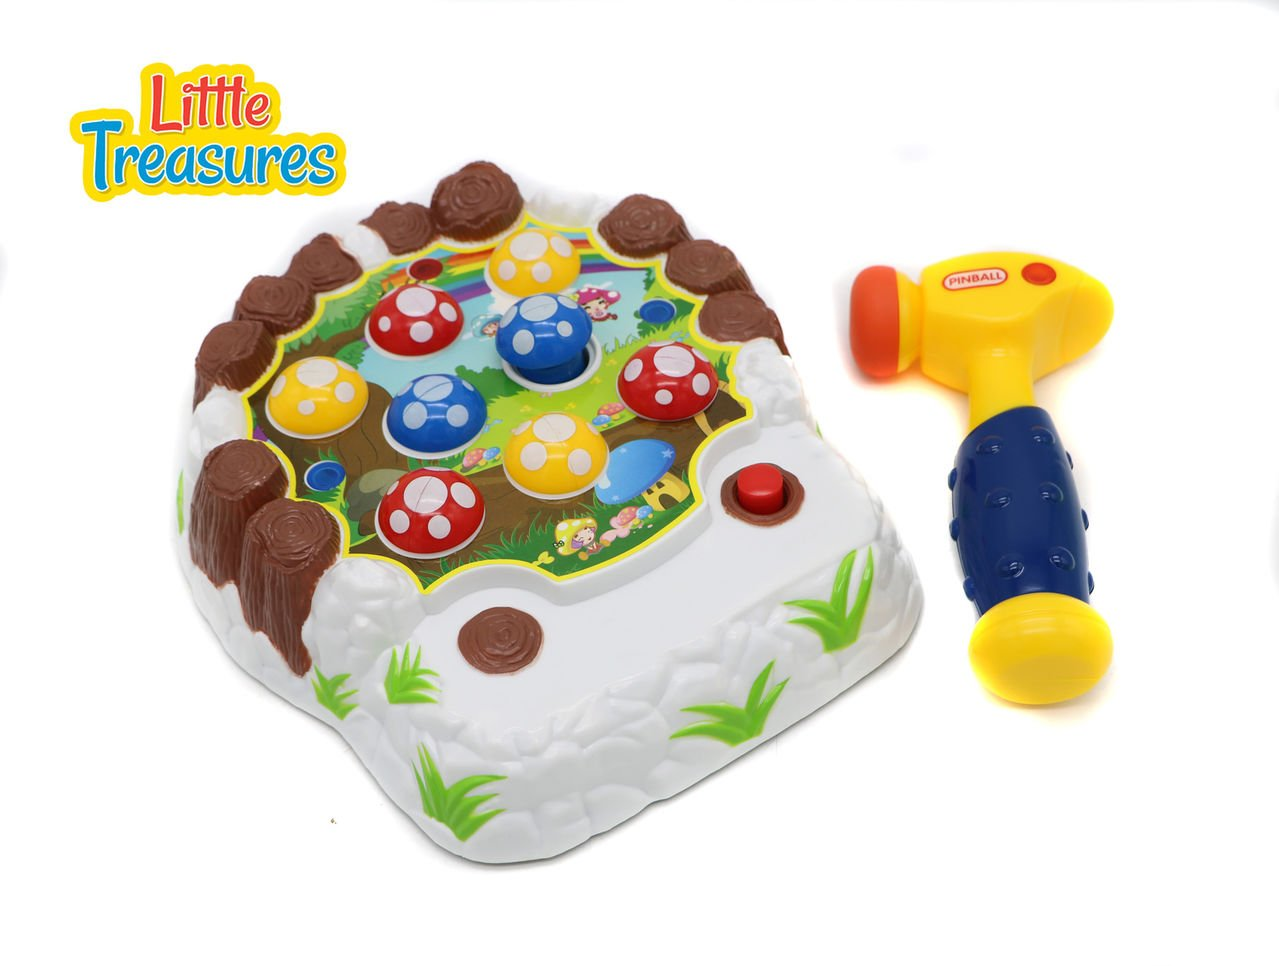 Little Treasures Mushroom Smacker Whack A Mole Style Game Package Play Series with Mushroom Patch and Toy Hammer